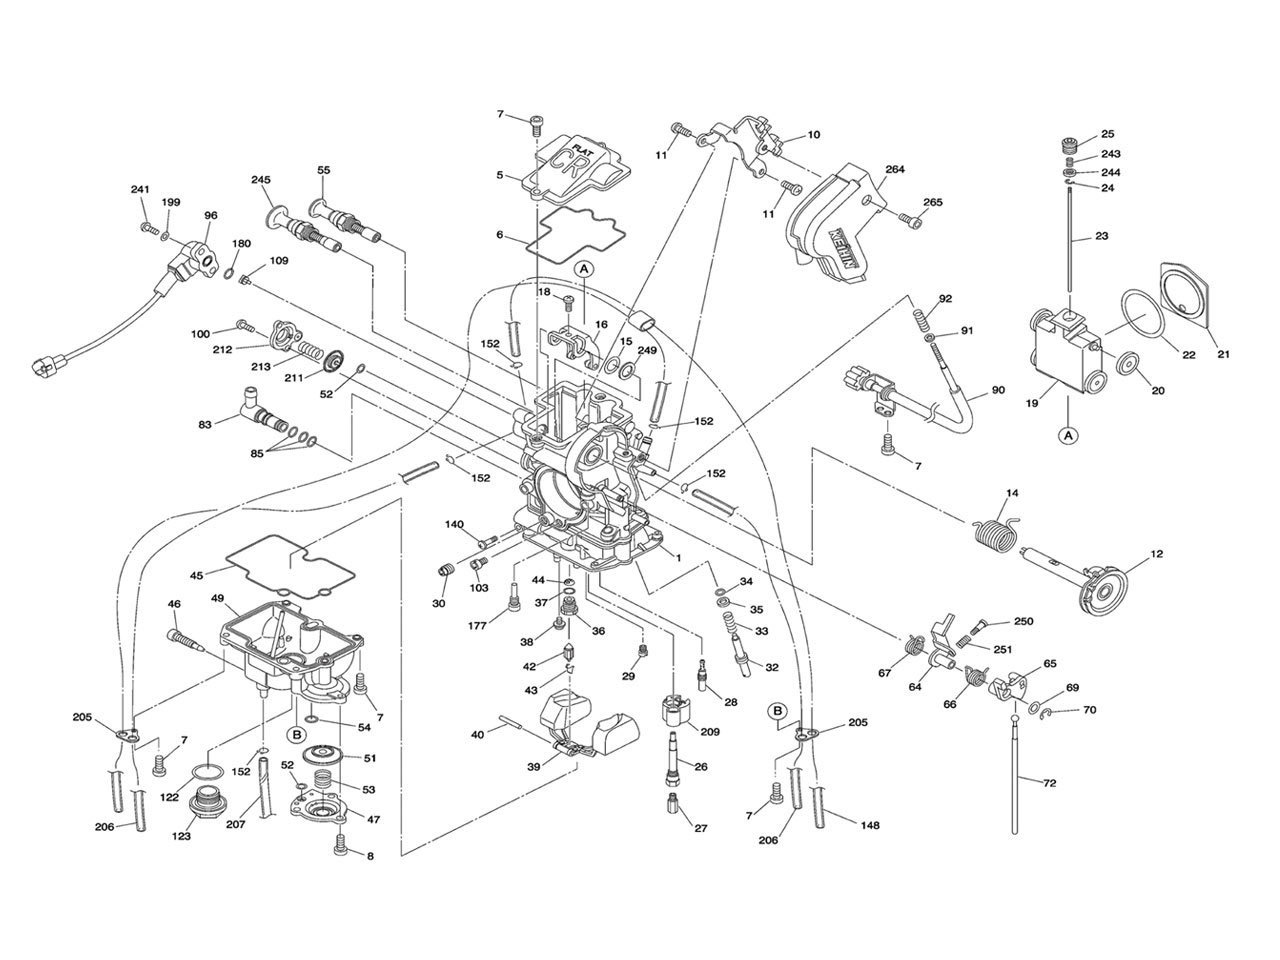 hight resolution of wrg 6242 49cc engine parts diagram 49cc engine parts diagram